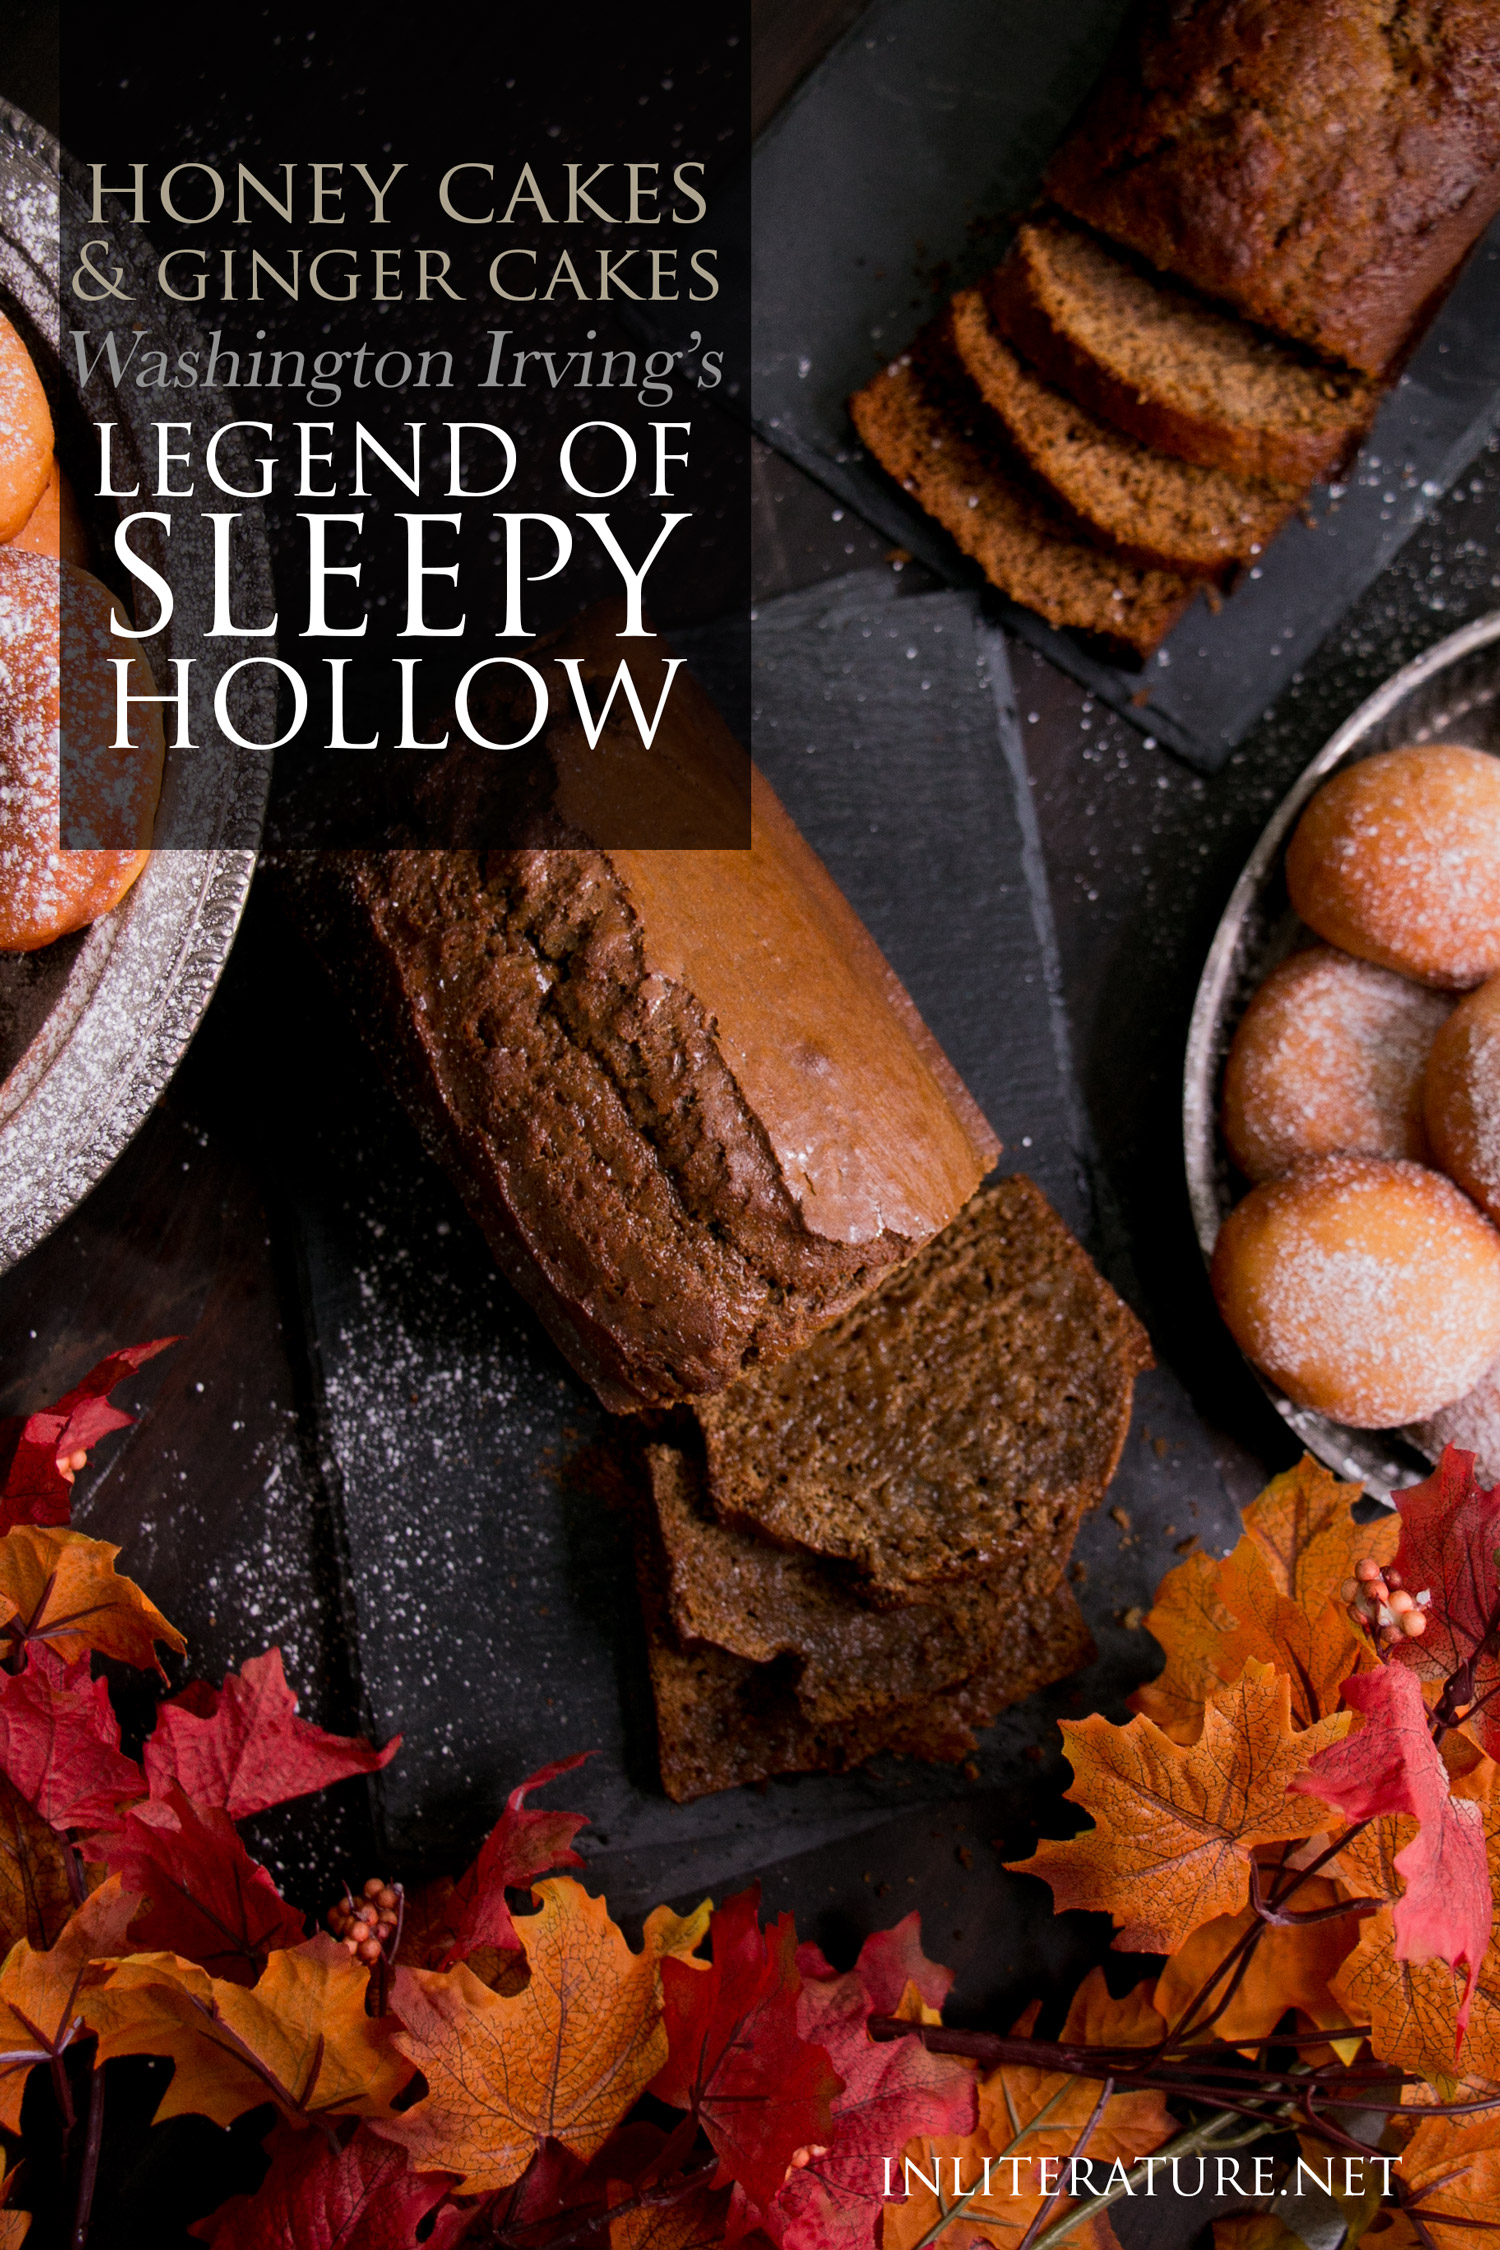 Honey-cakes-ginger-cakes-Washington-Irving-Sleepy-Hollow-party